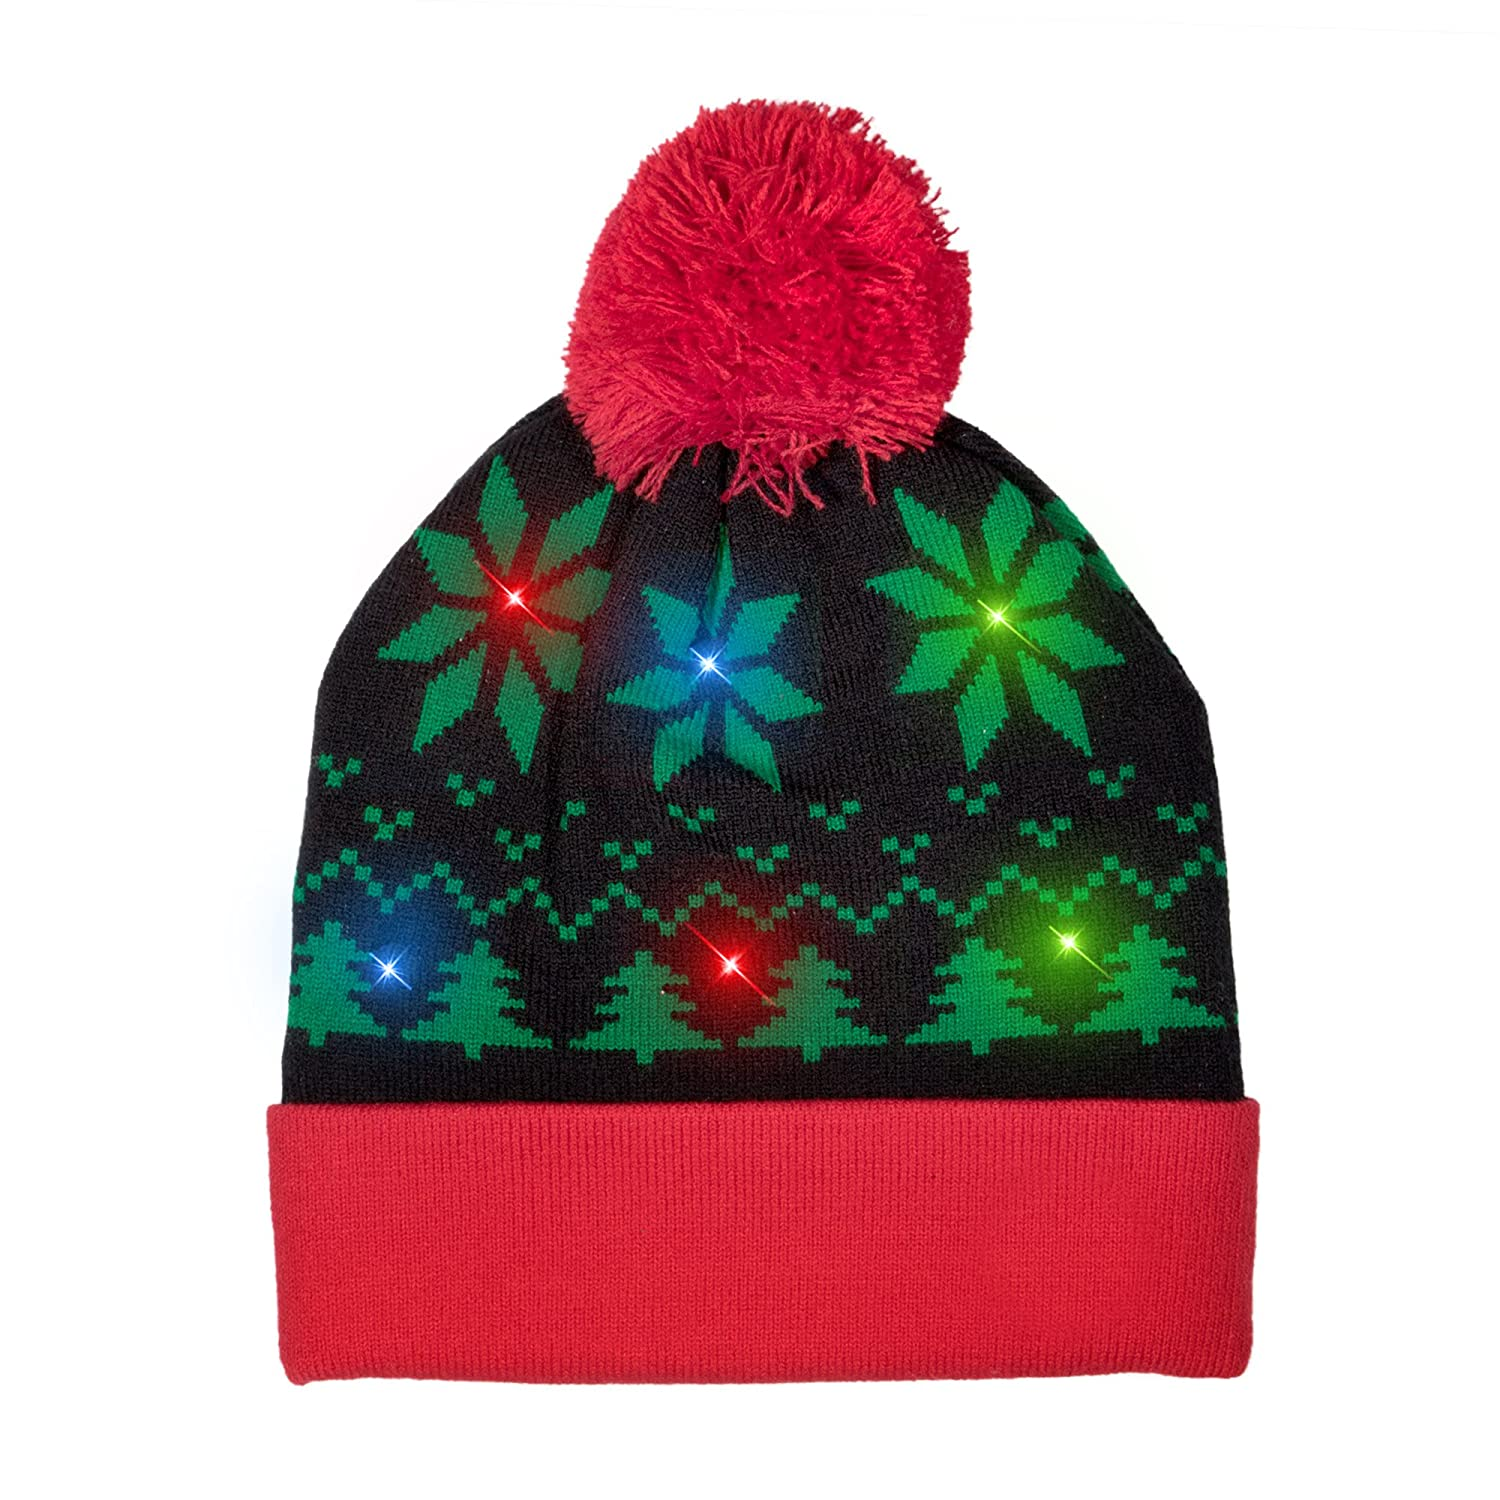 Windy City Novelties LED Light-up Knitted Ugly Sweater Holiday Xmas Christmas Beanie - 3 Flashing Modes  FA La La Beanie